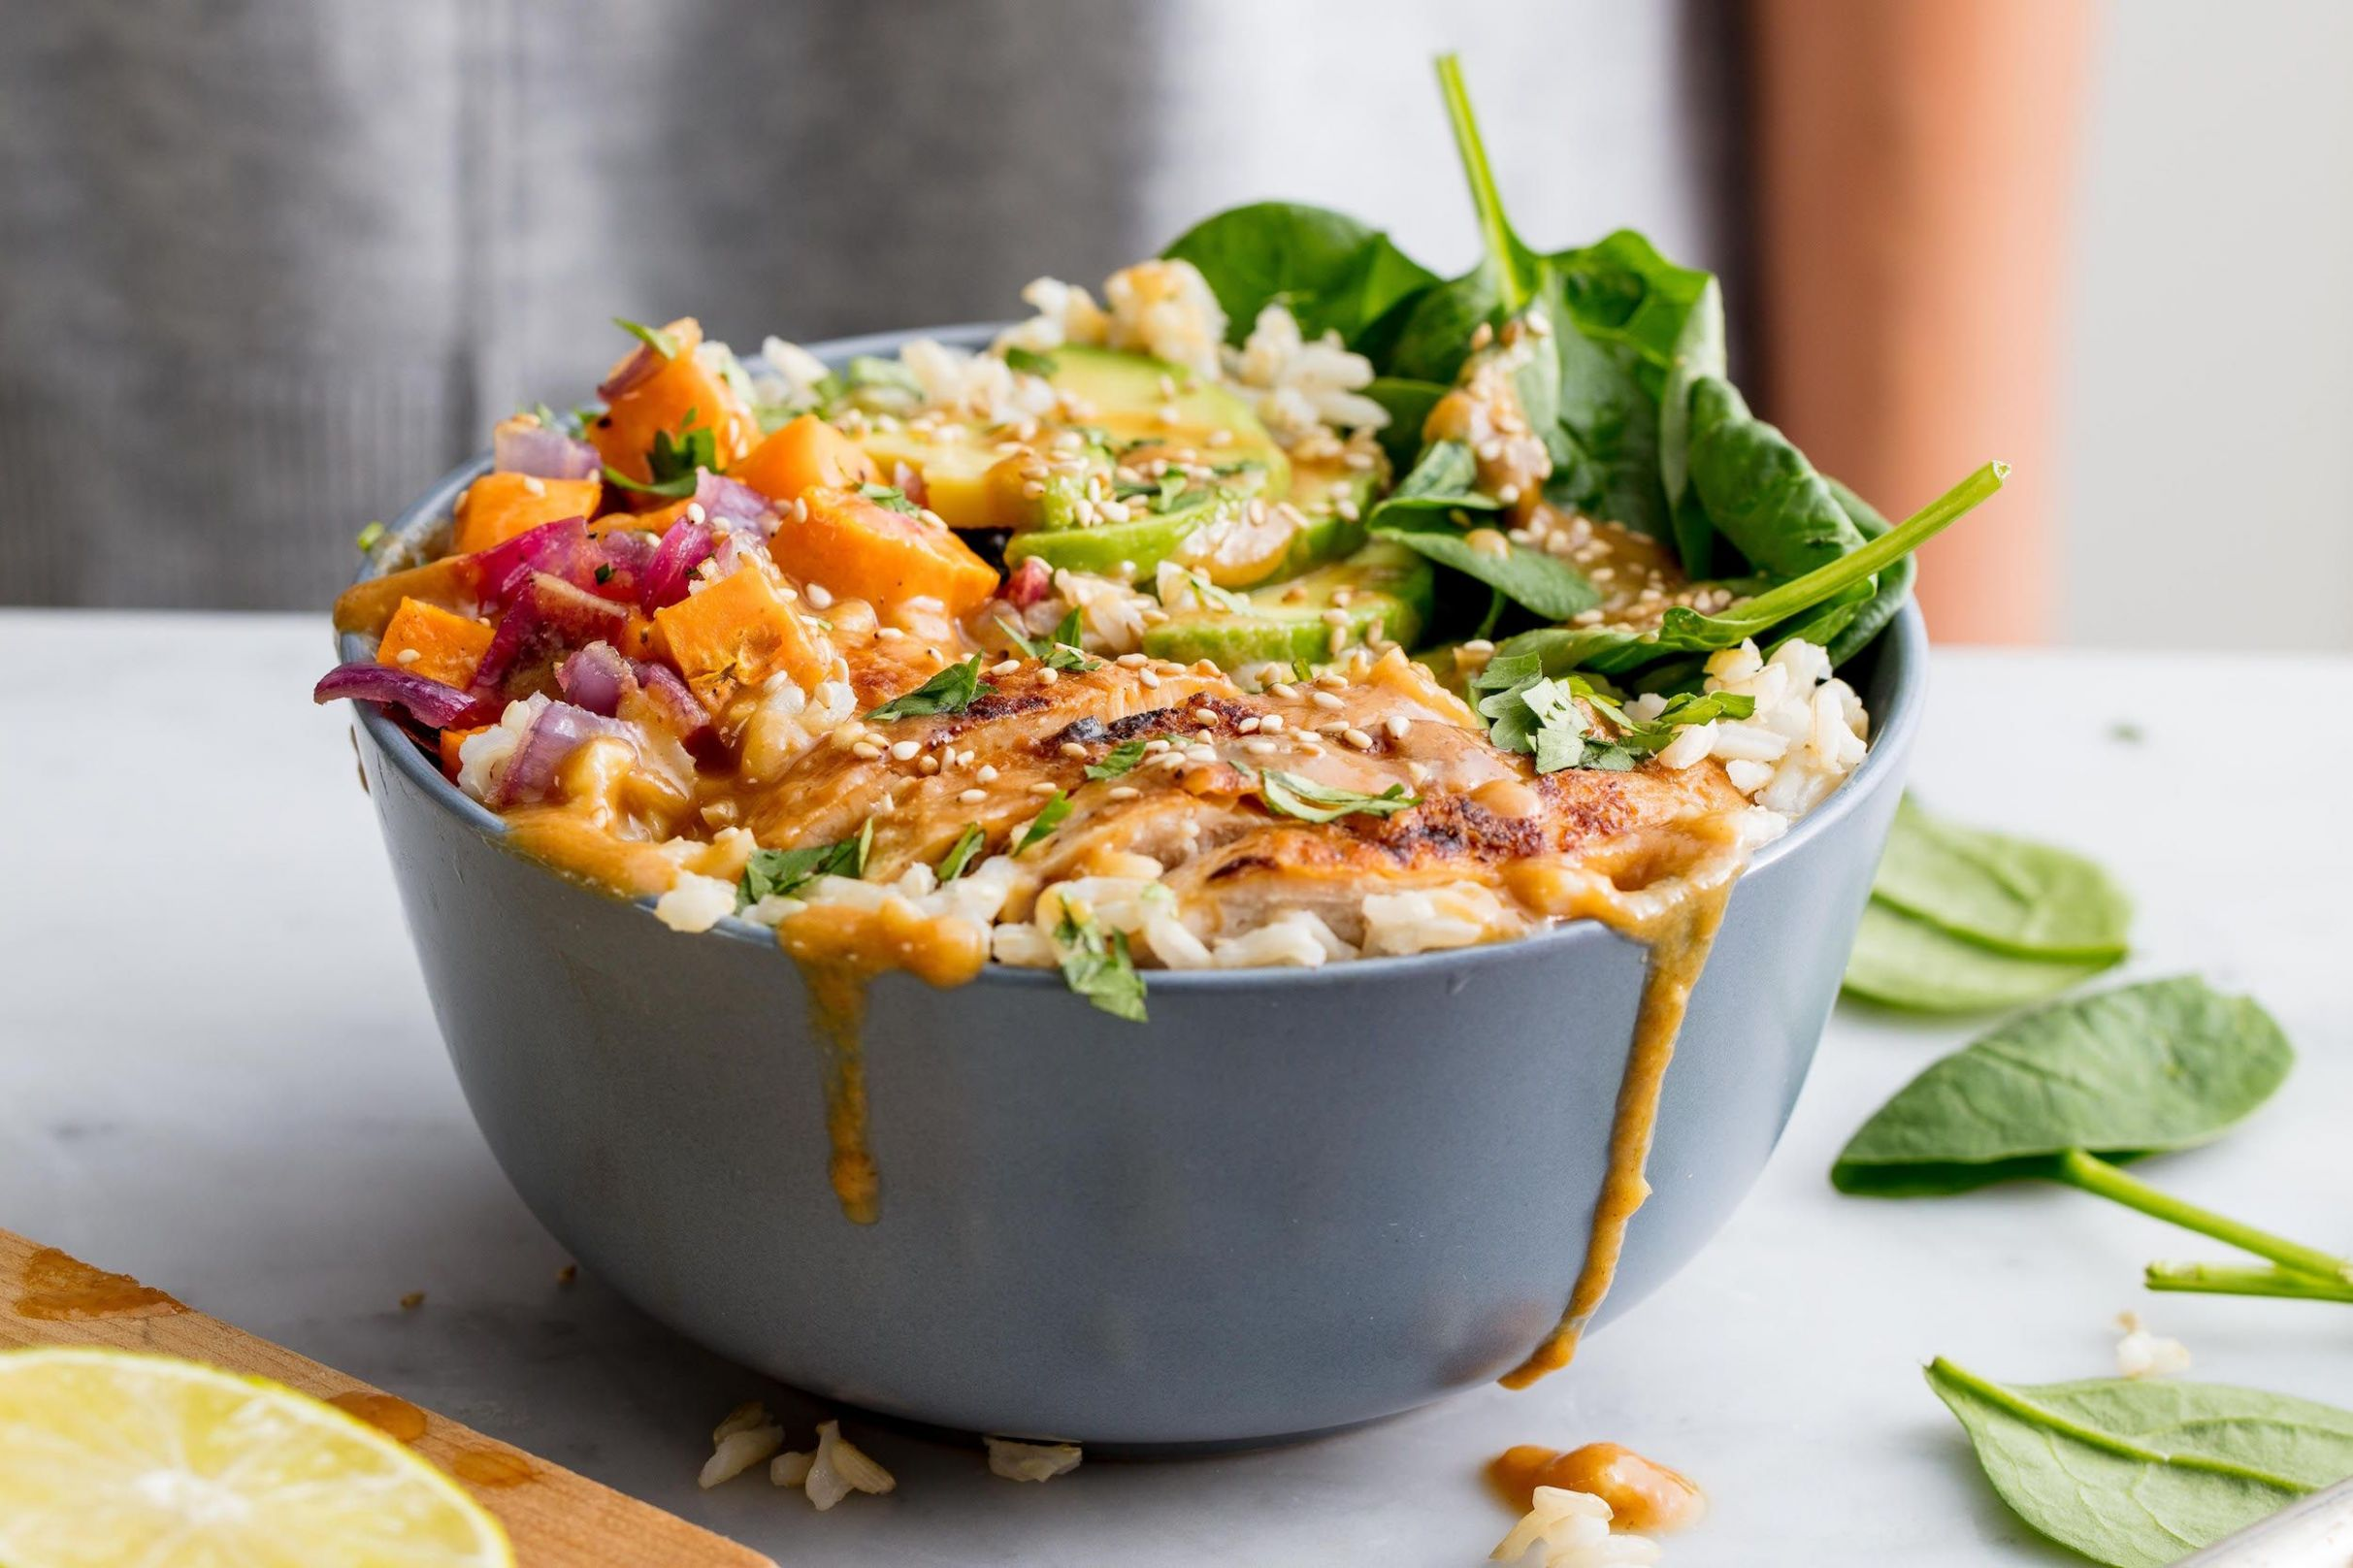 8+ Quick Lunch Ideas for Work – Recipes for Fast Work Lunches